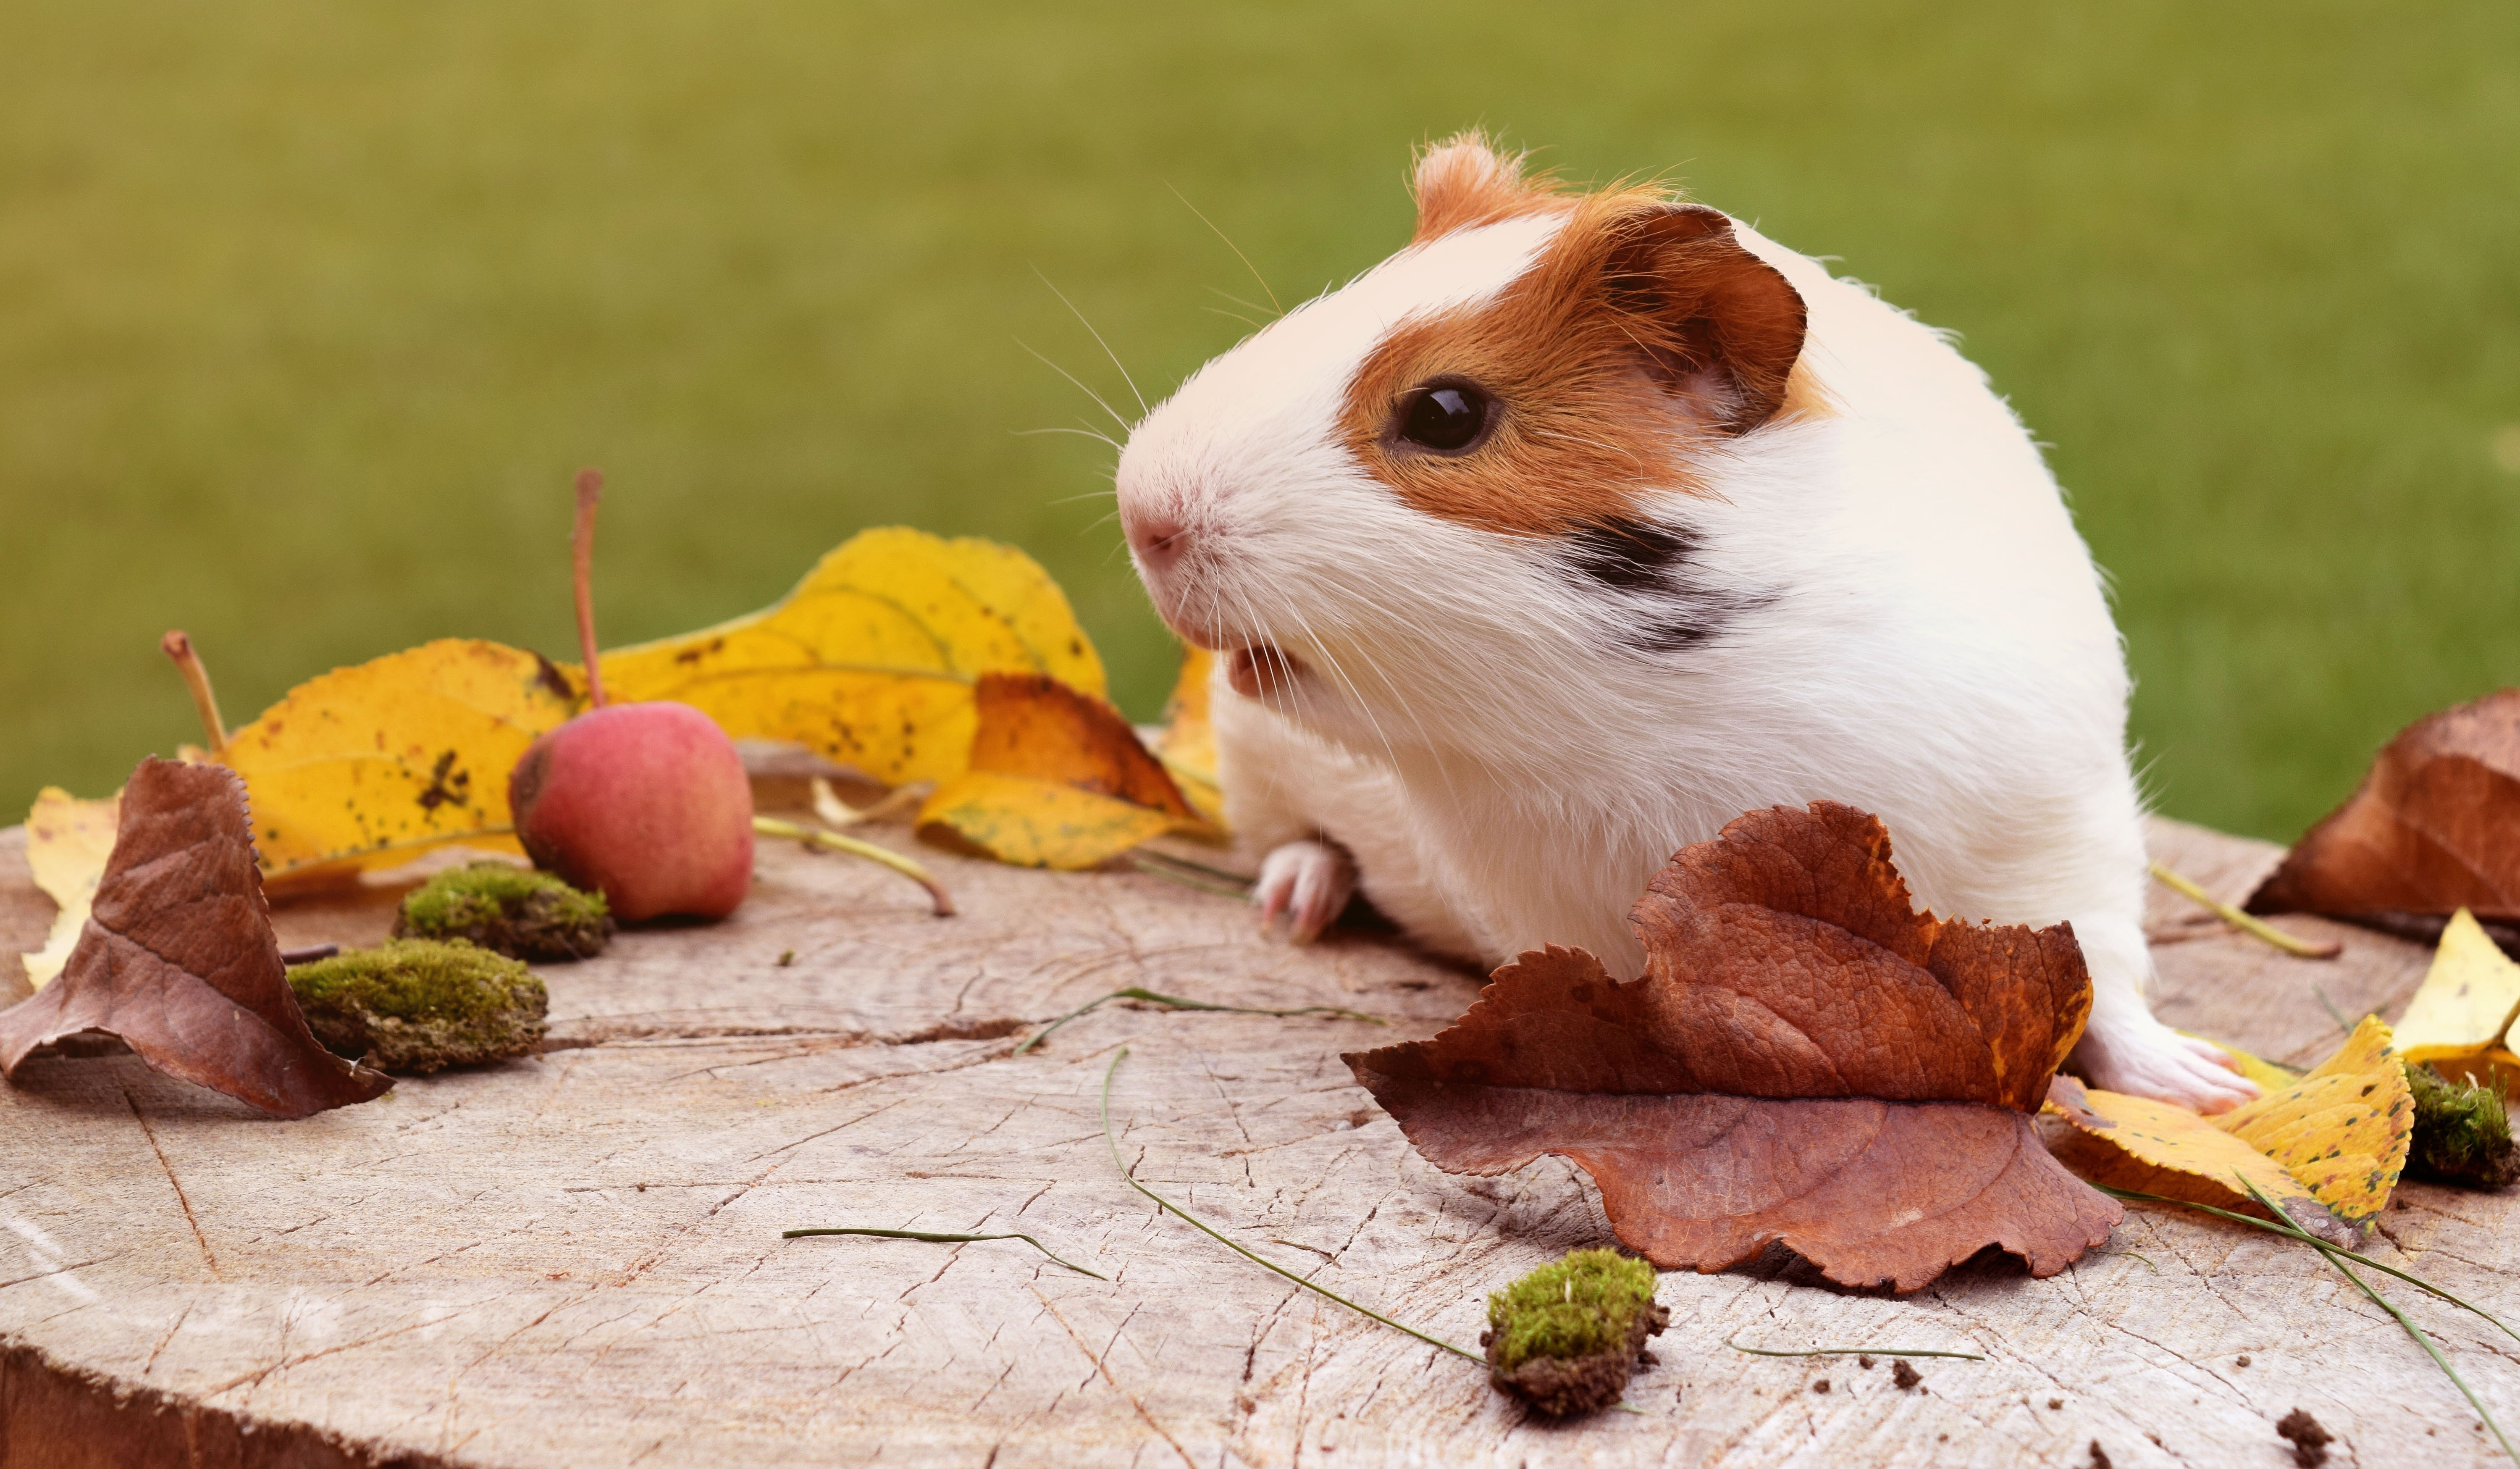 126021 download wallpaper Animals, Guinea Pig, Rodent, Foliage, Autumn screensavers and pictures for free